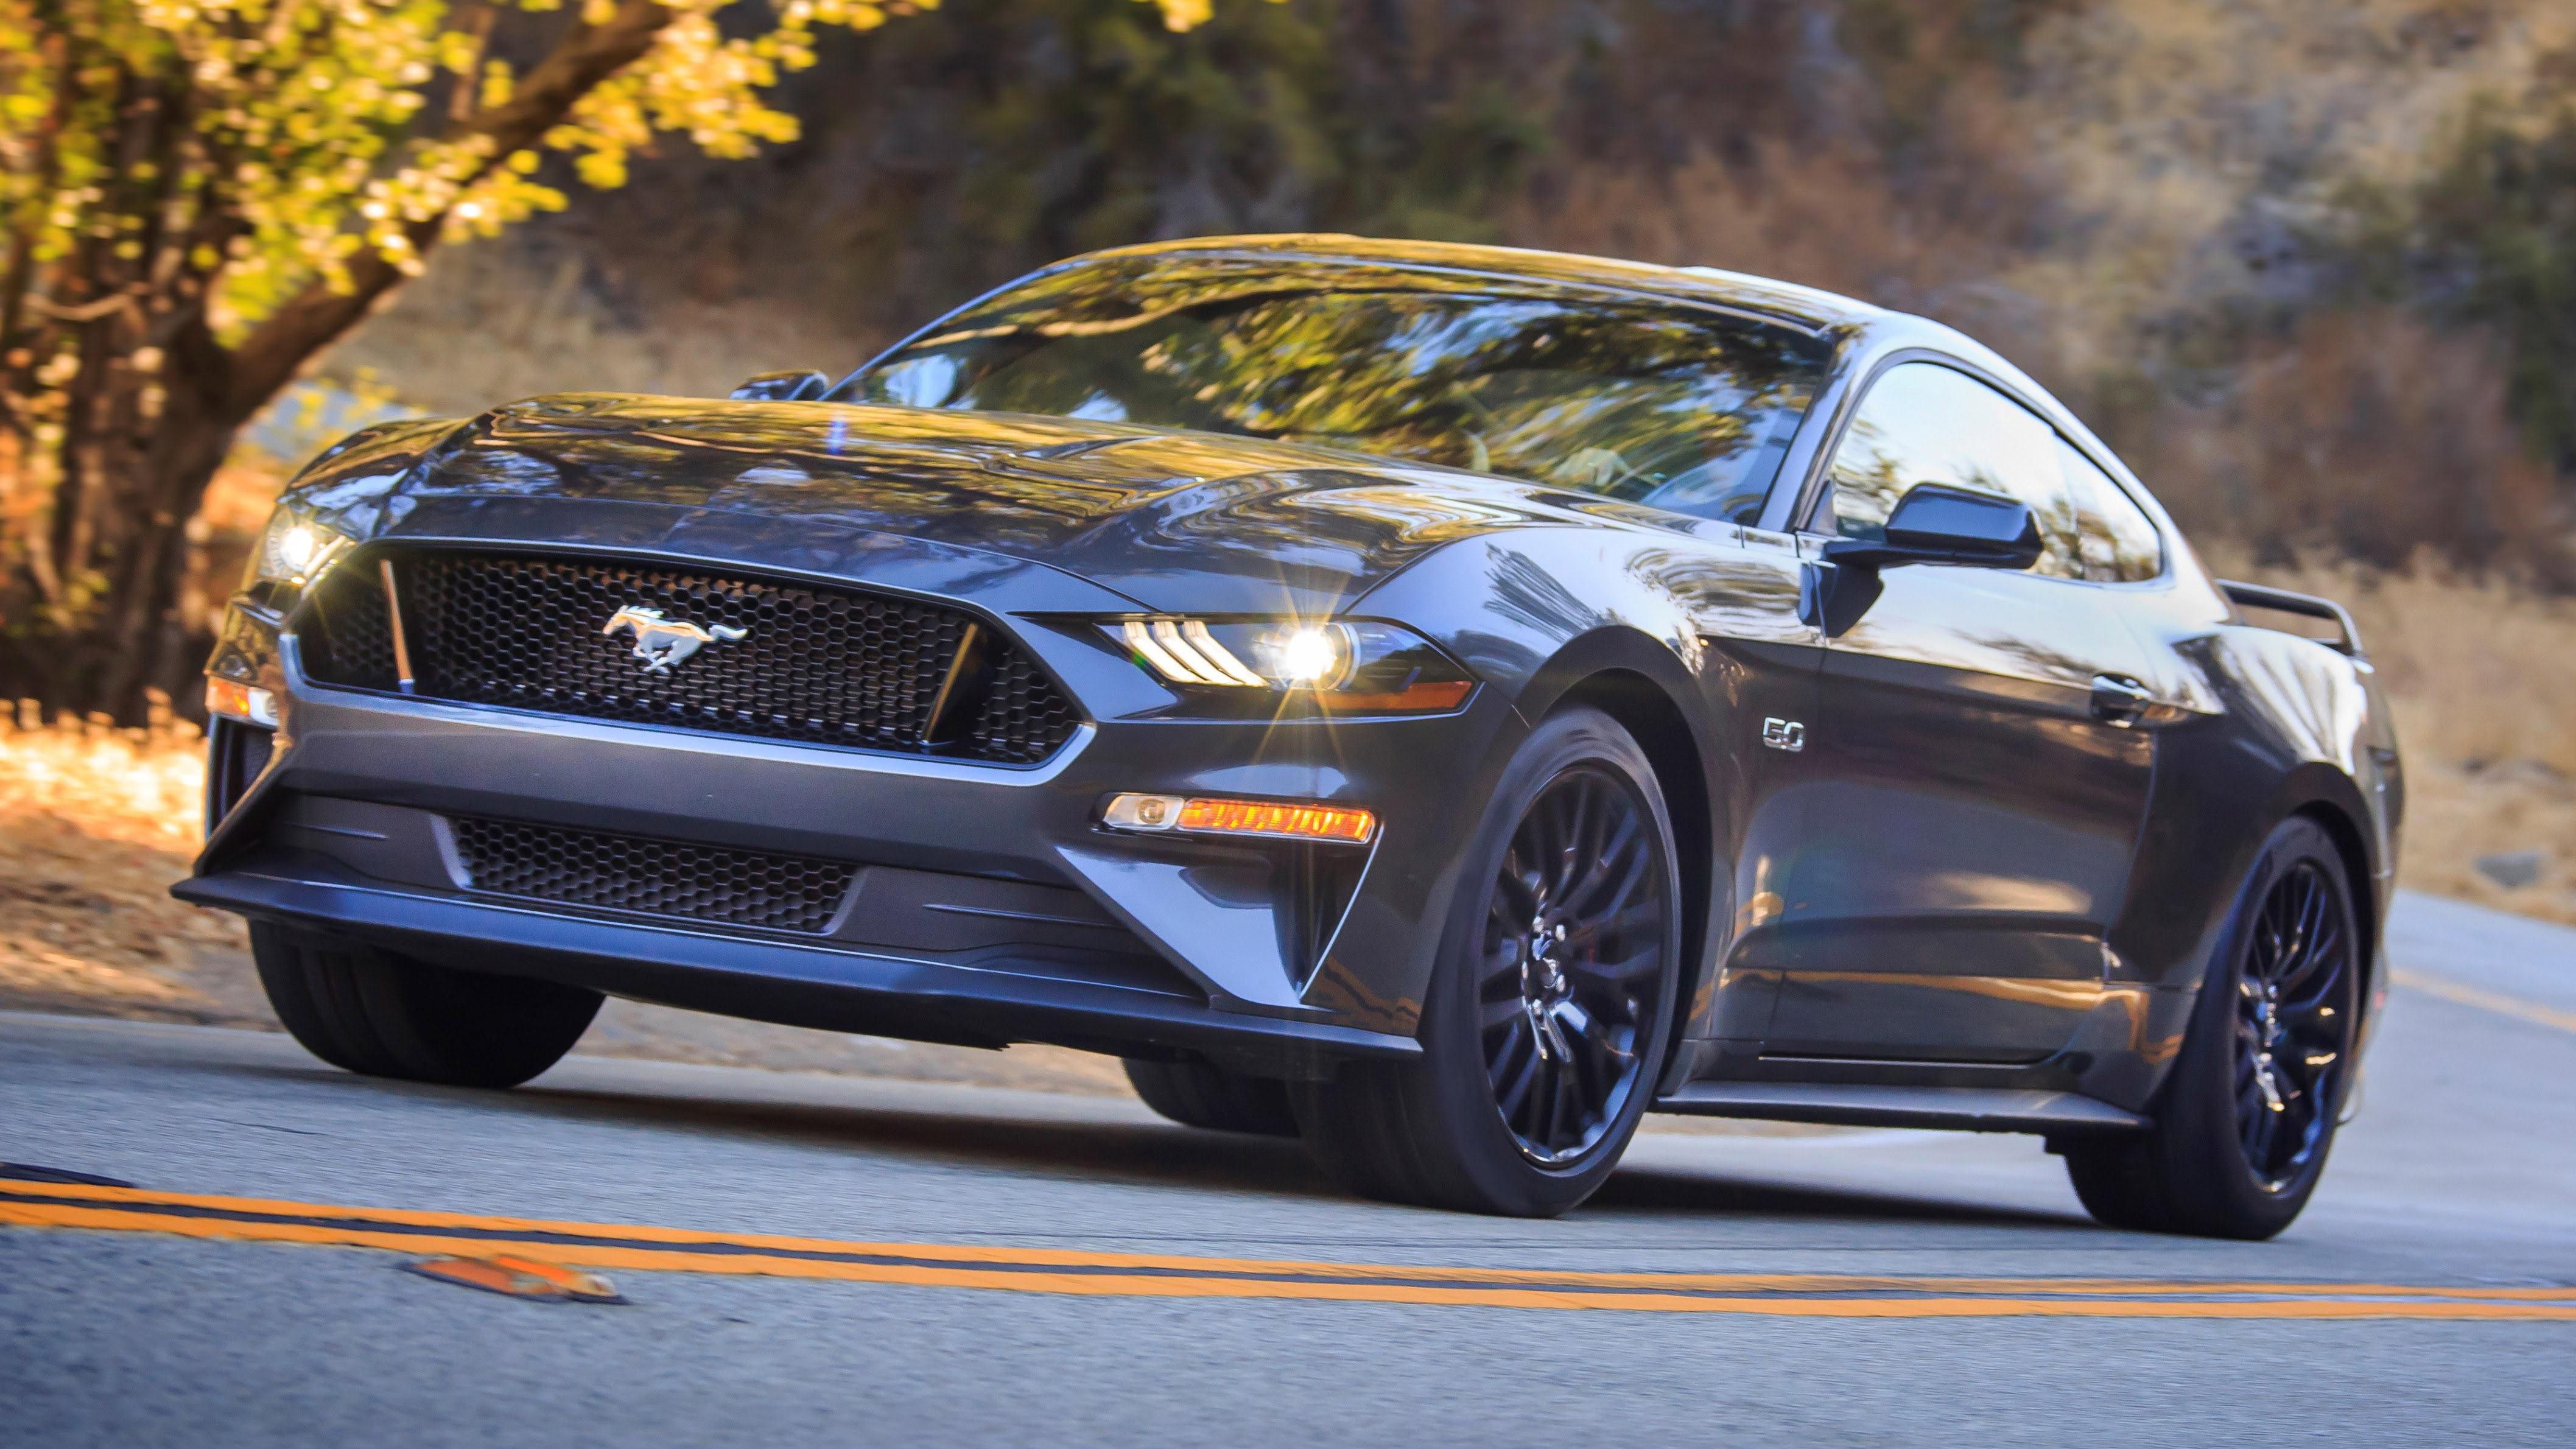 2018 Ford Mustang front three quarters